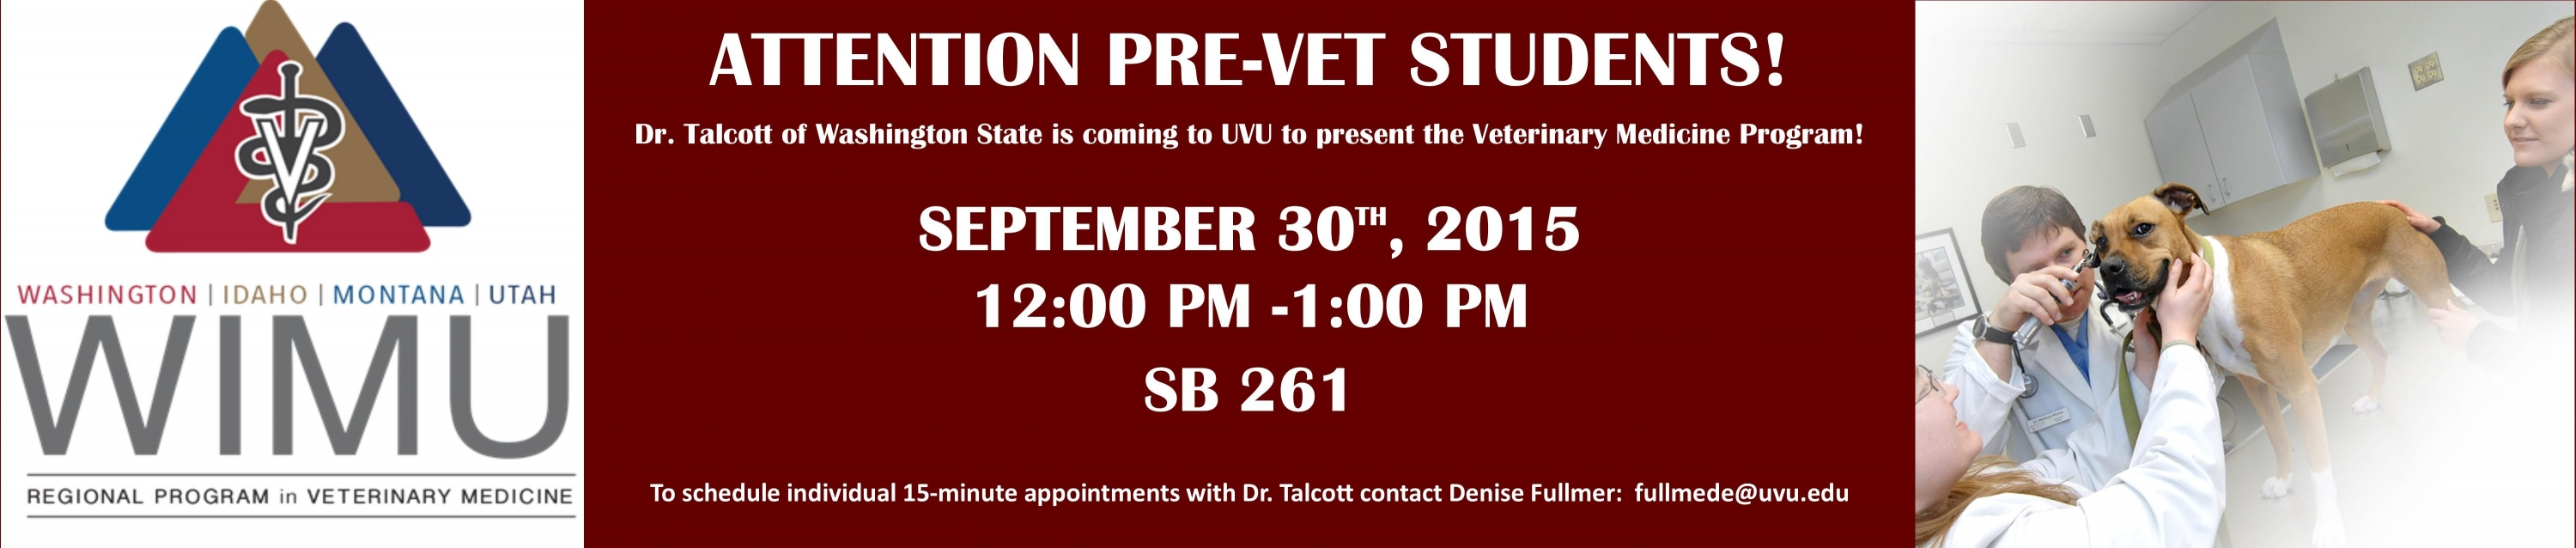 Washington State Pre-Vet Program